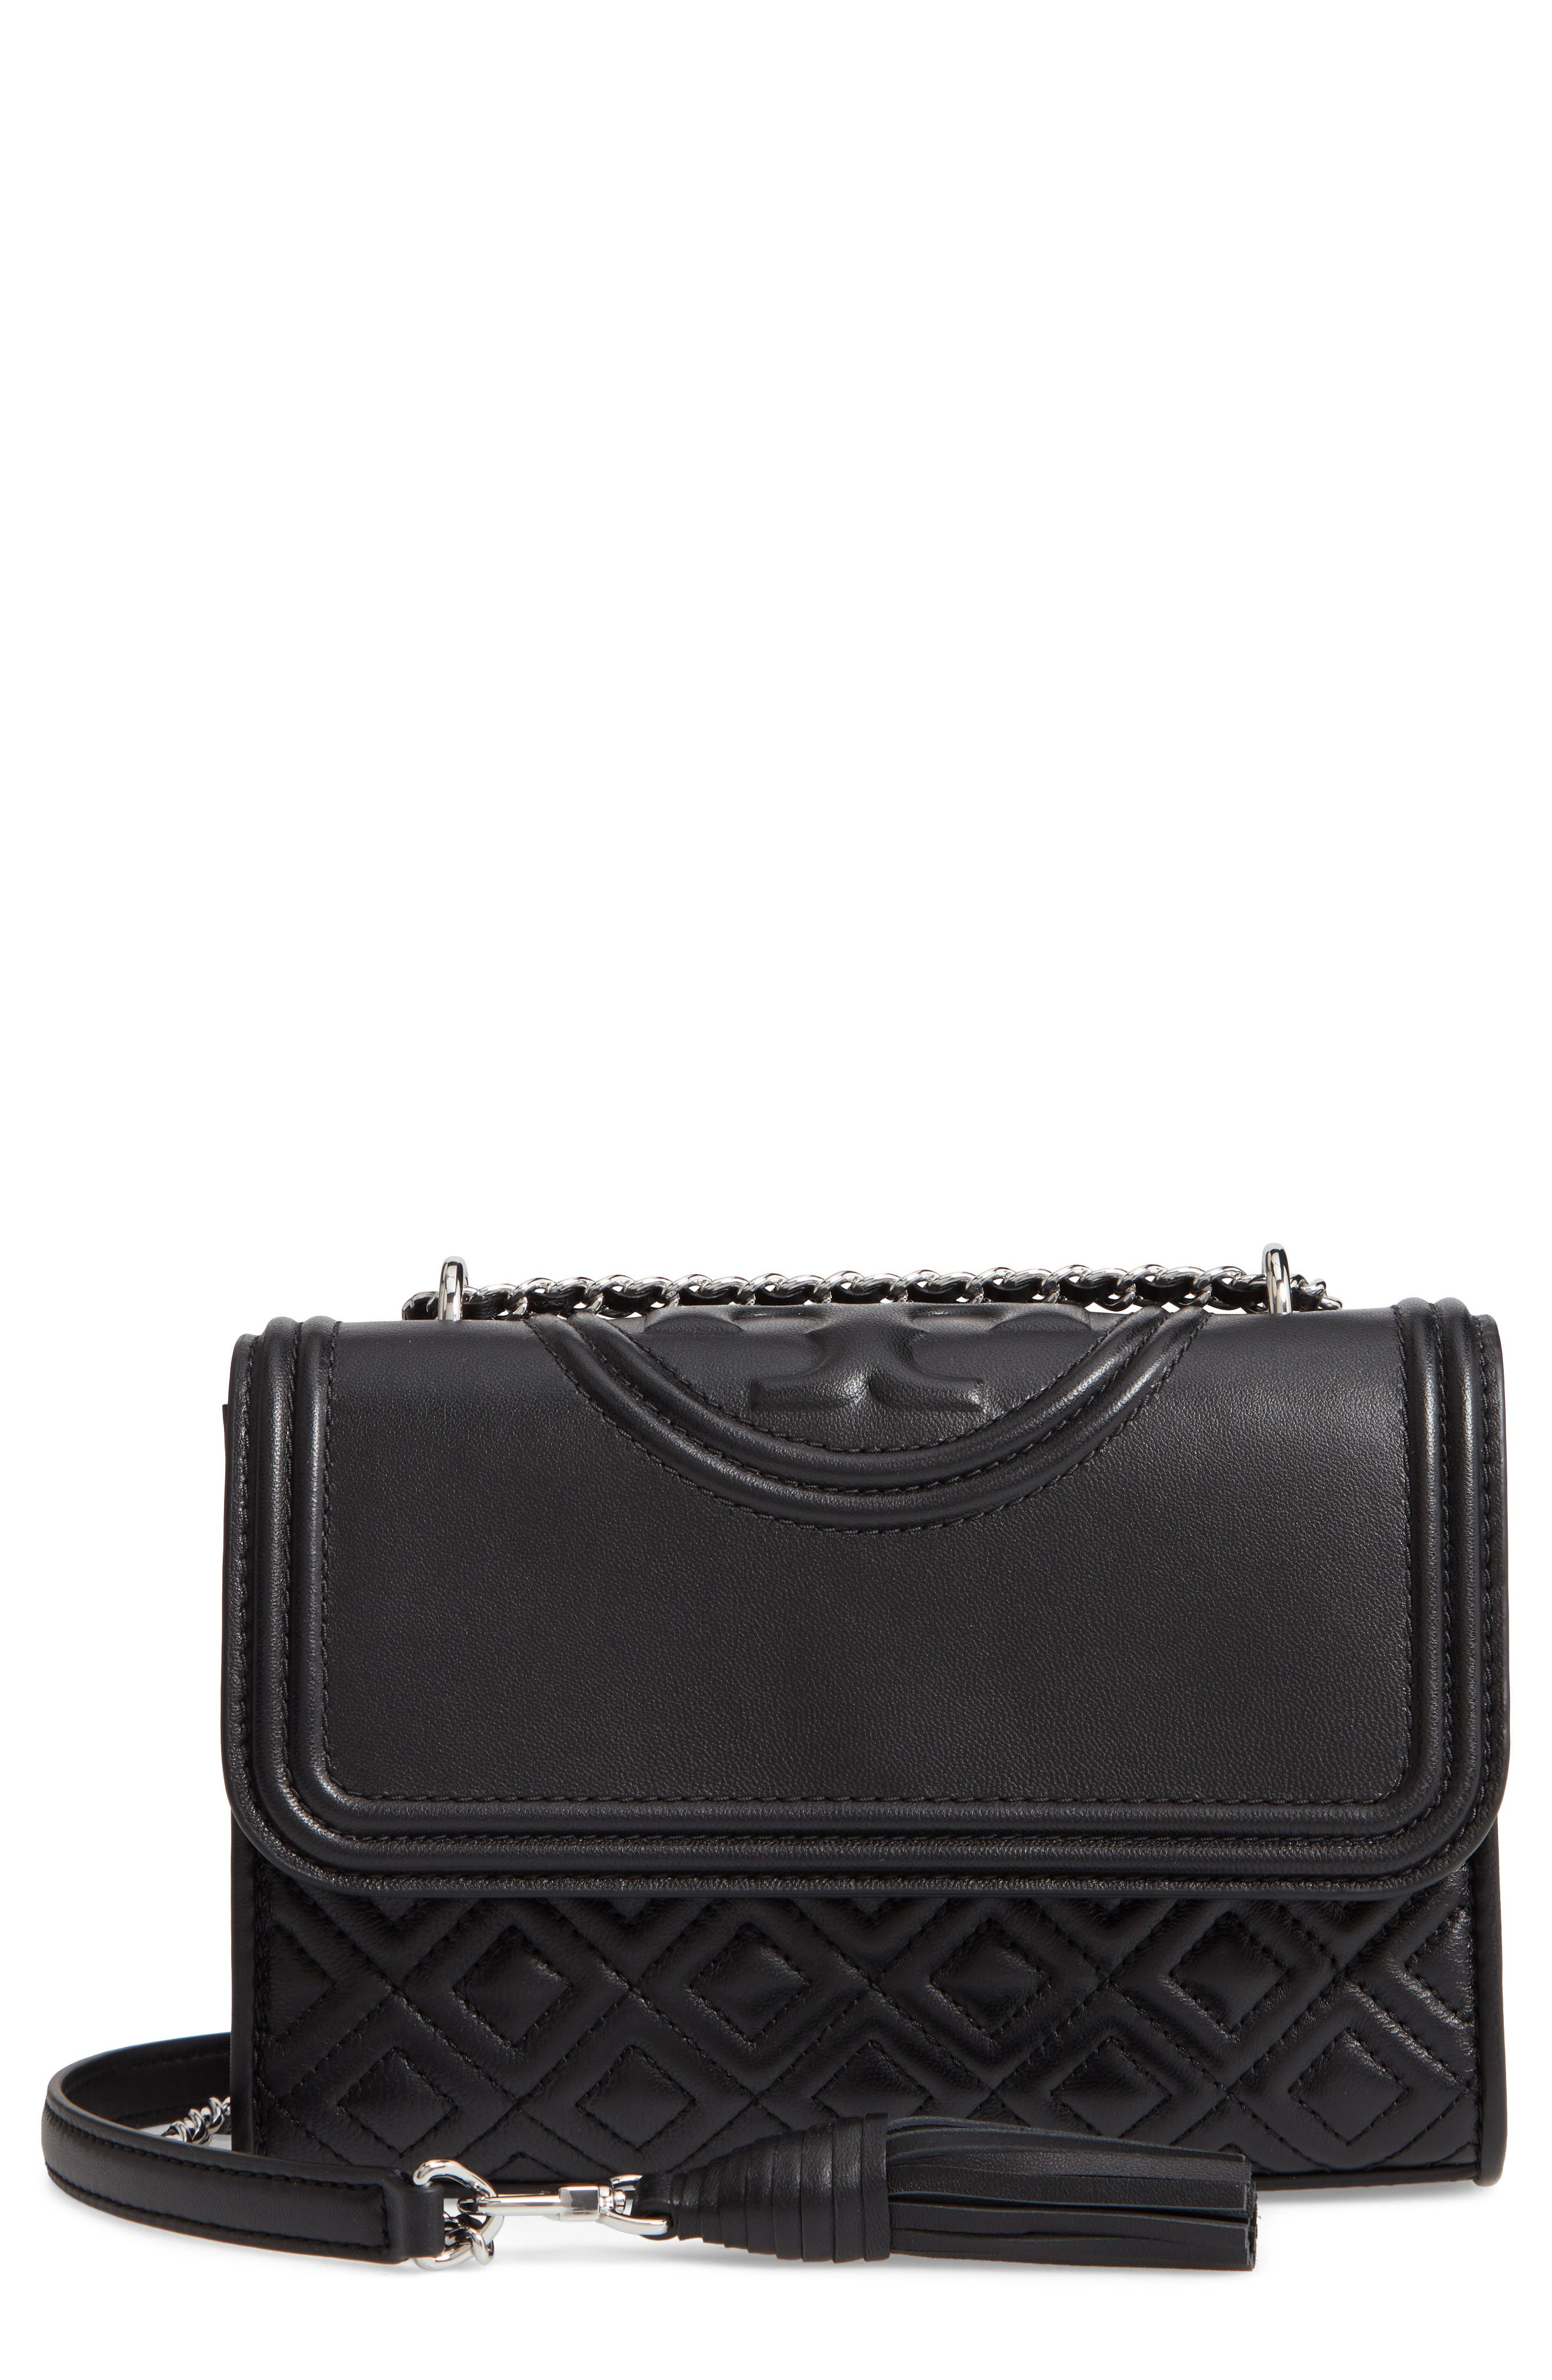 TORY BURCH Small Fleming Leather Convertible Shoulder Bag, Main, color, BLACK / SILVER